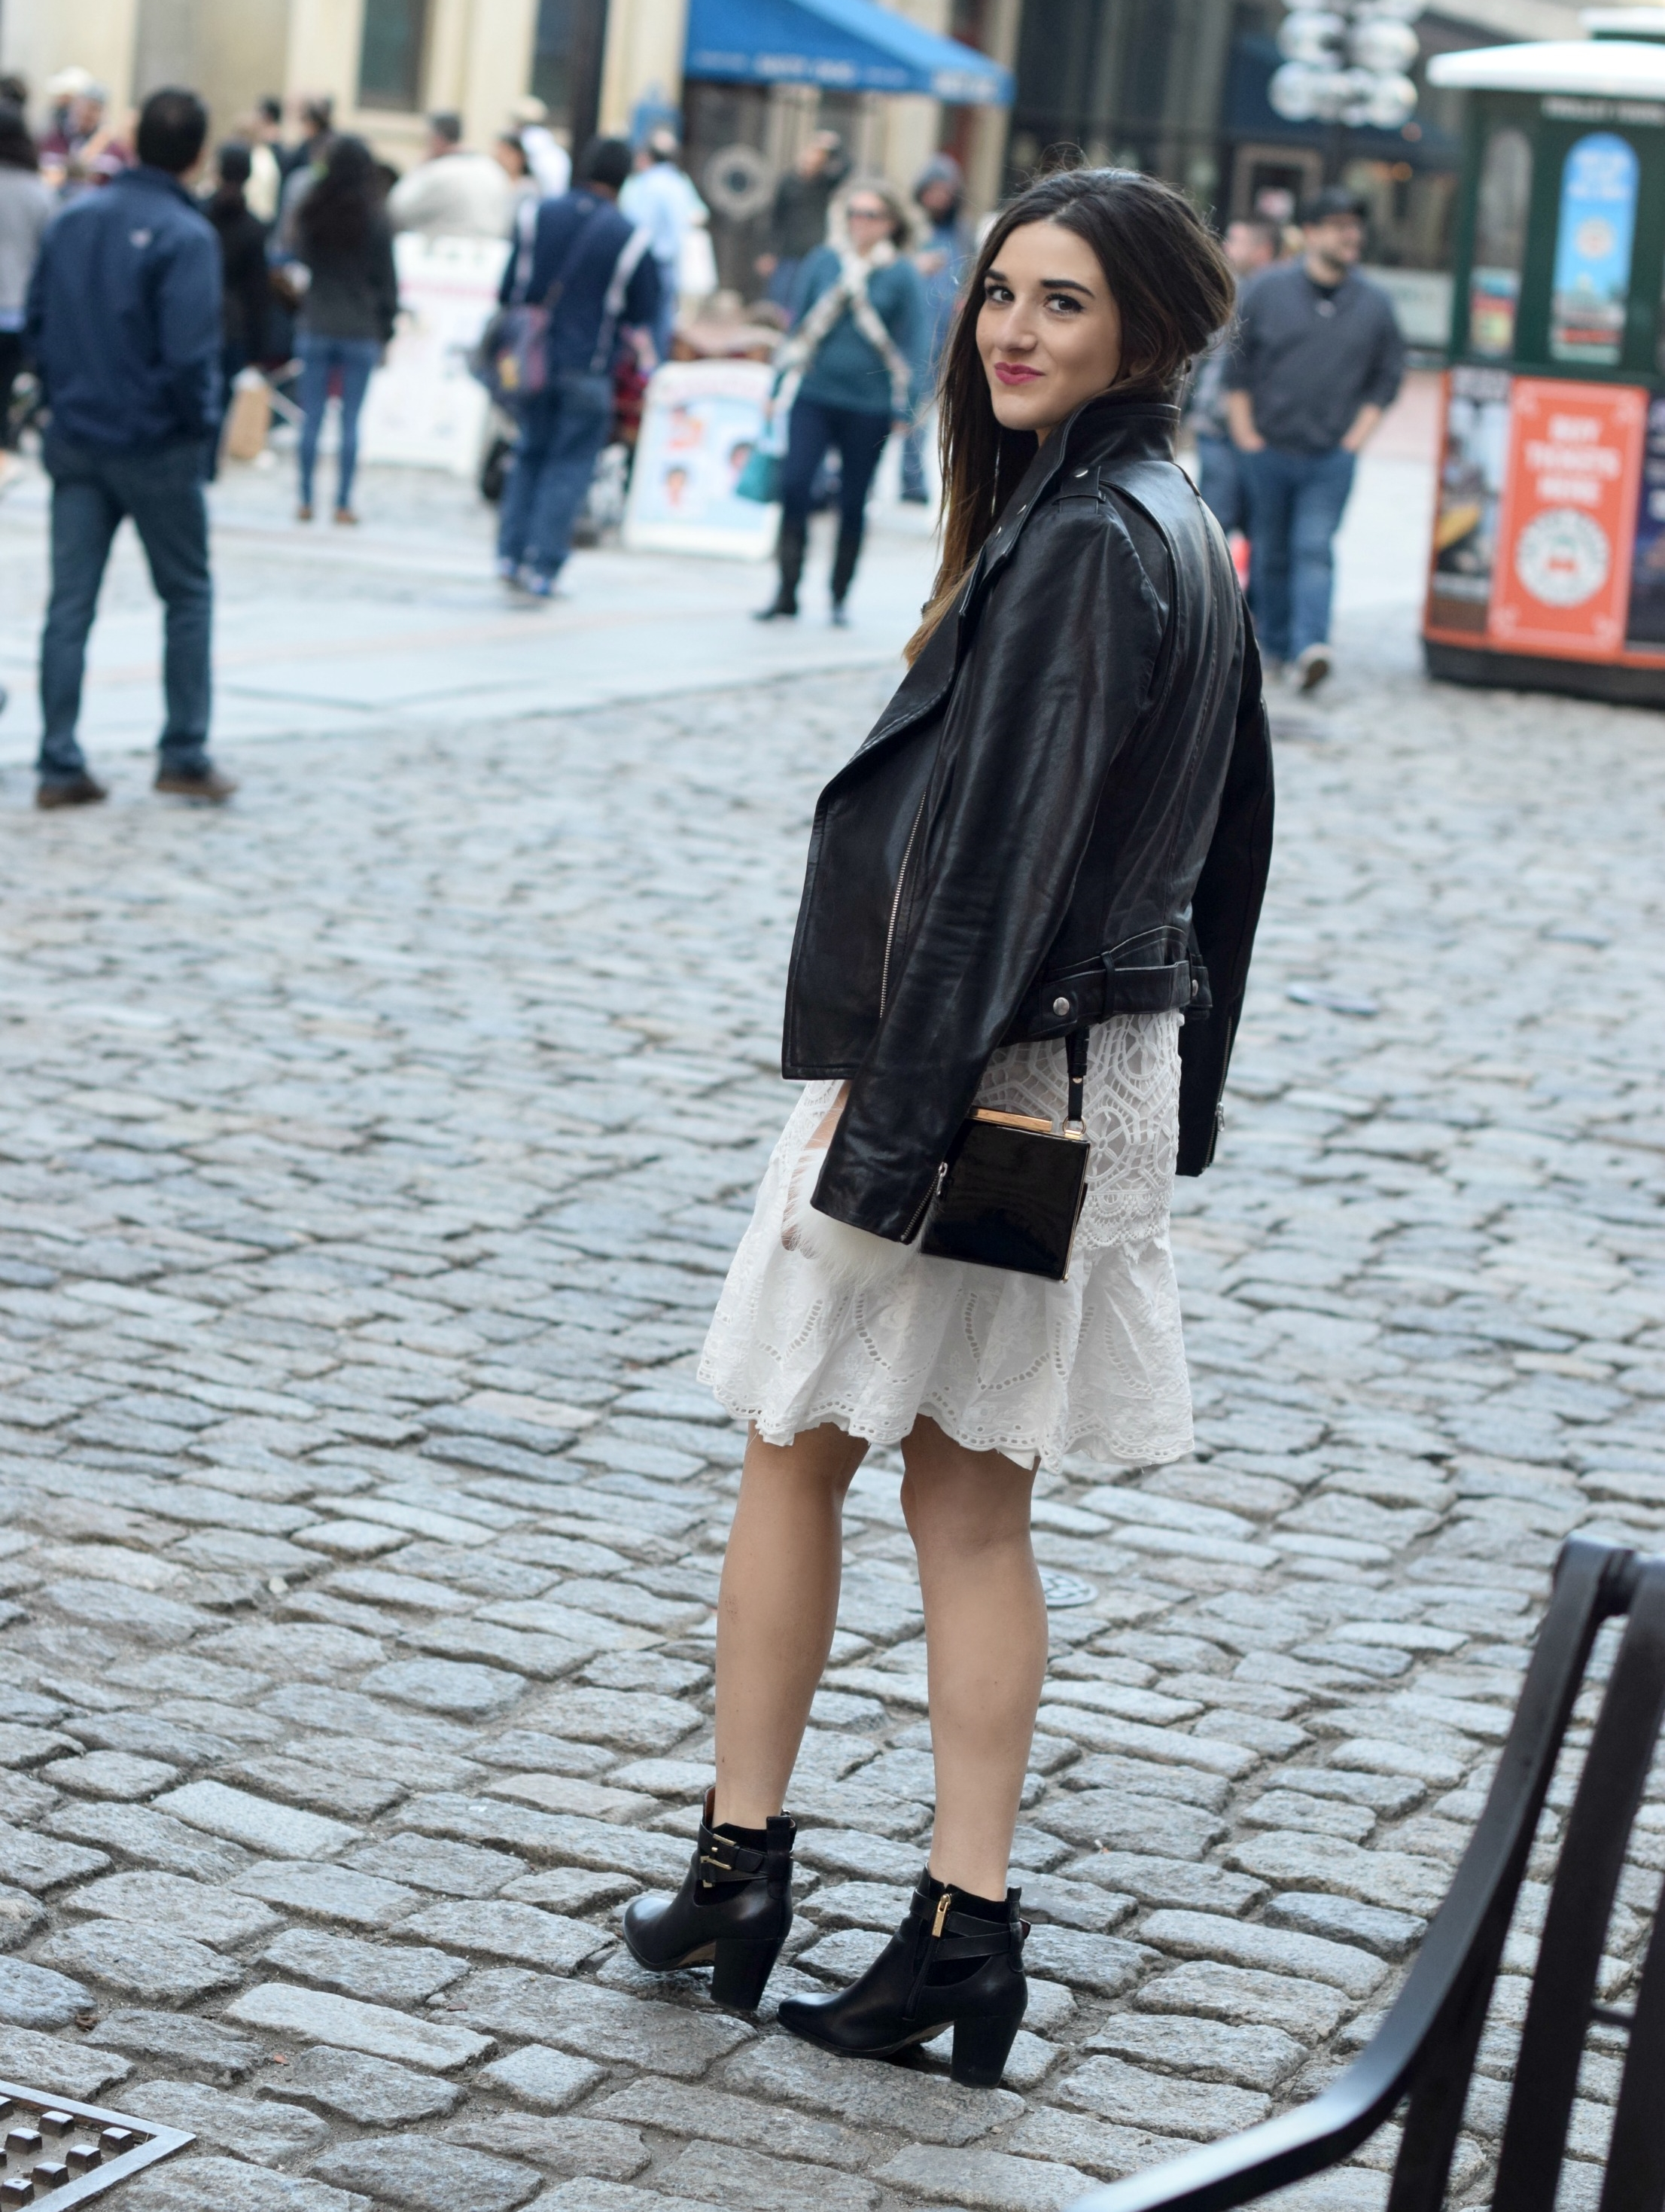 Desigual White Lace Dress Mackage Moto Jacket Louboutins & Love Fashion Blog Esther Santer NYC Street Style Blogger Outfit OOTD Black Booties Nordstrom Shoes Inspo Photoshoot Boston Leather Bag Pom Pom Model Girl Women Hair Fall Look Beautiful Pretty.jpg